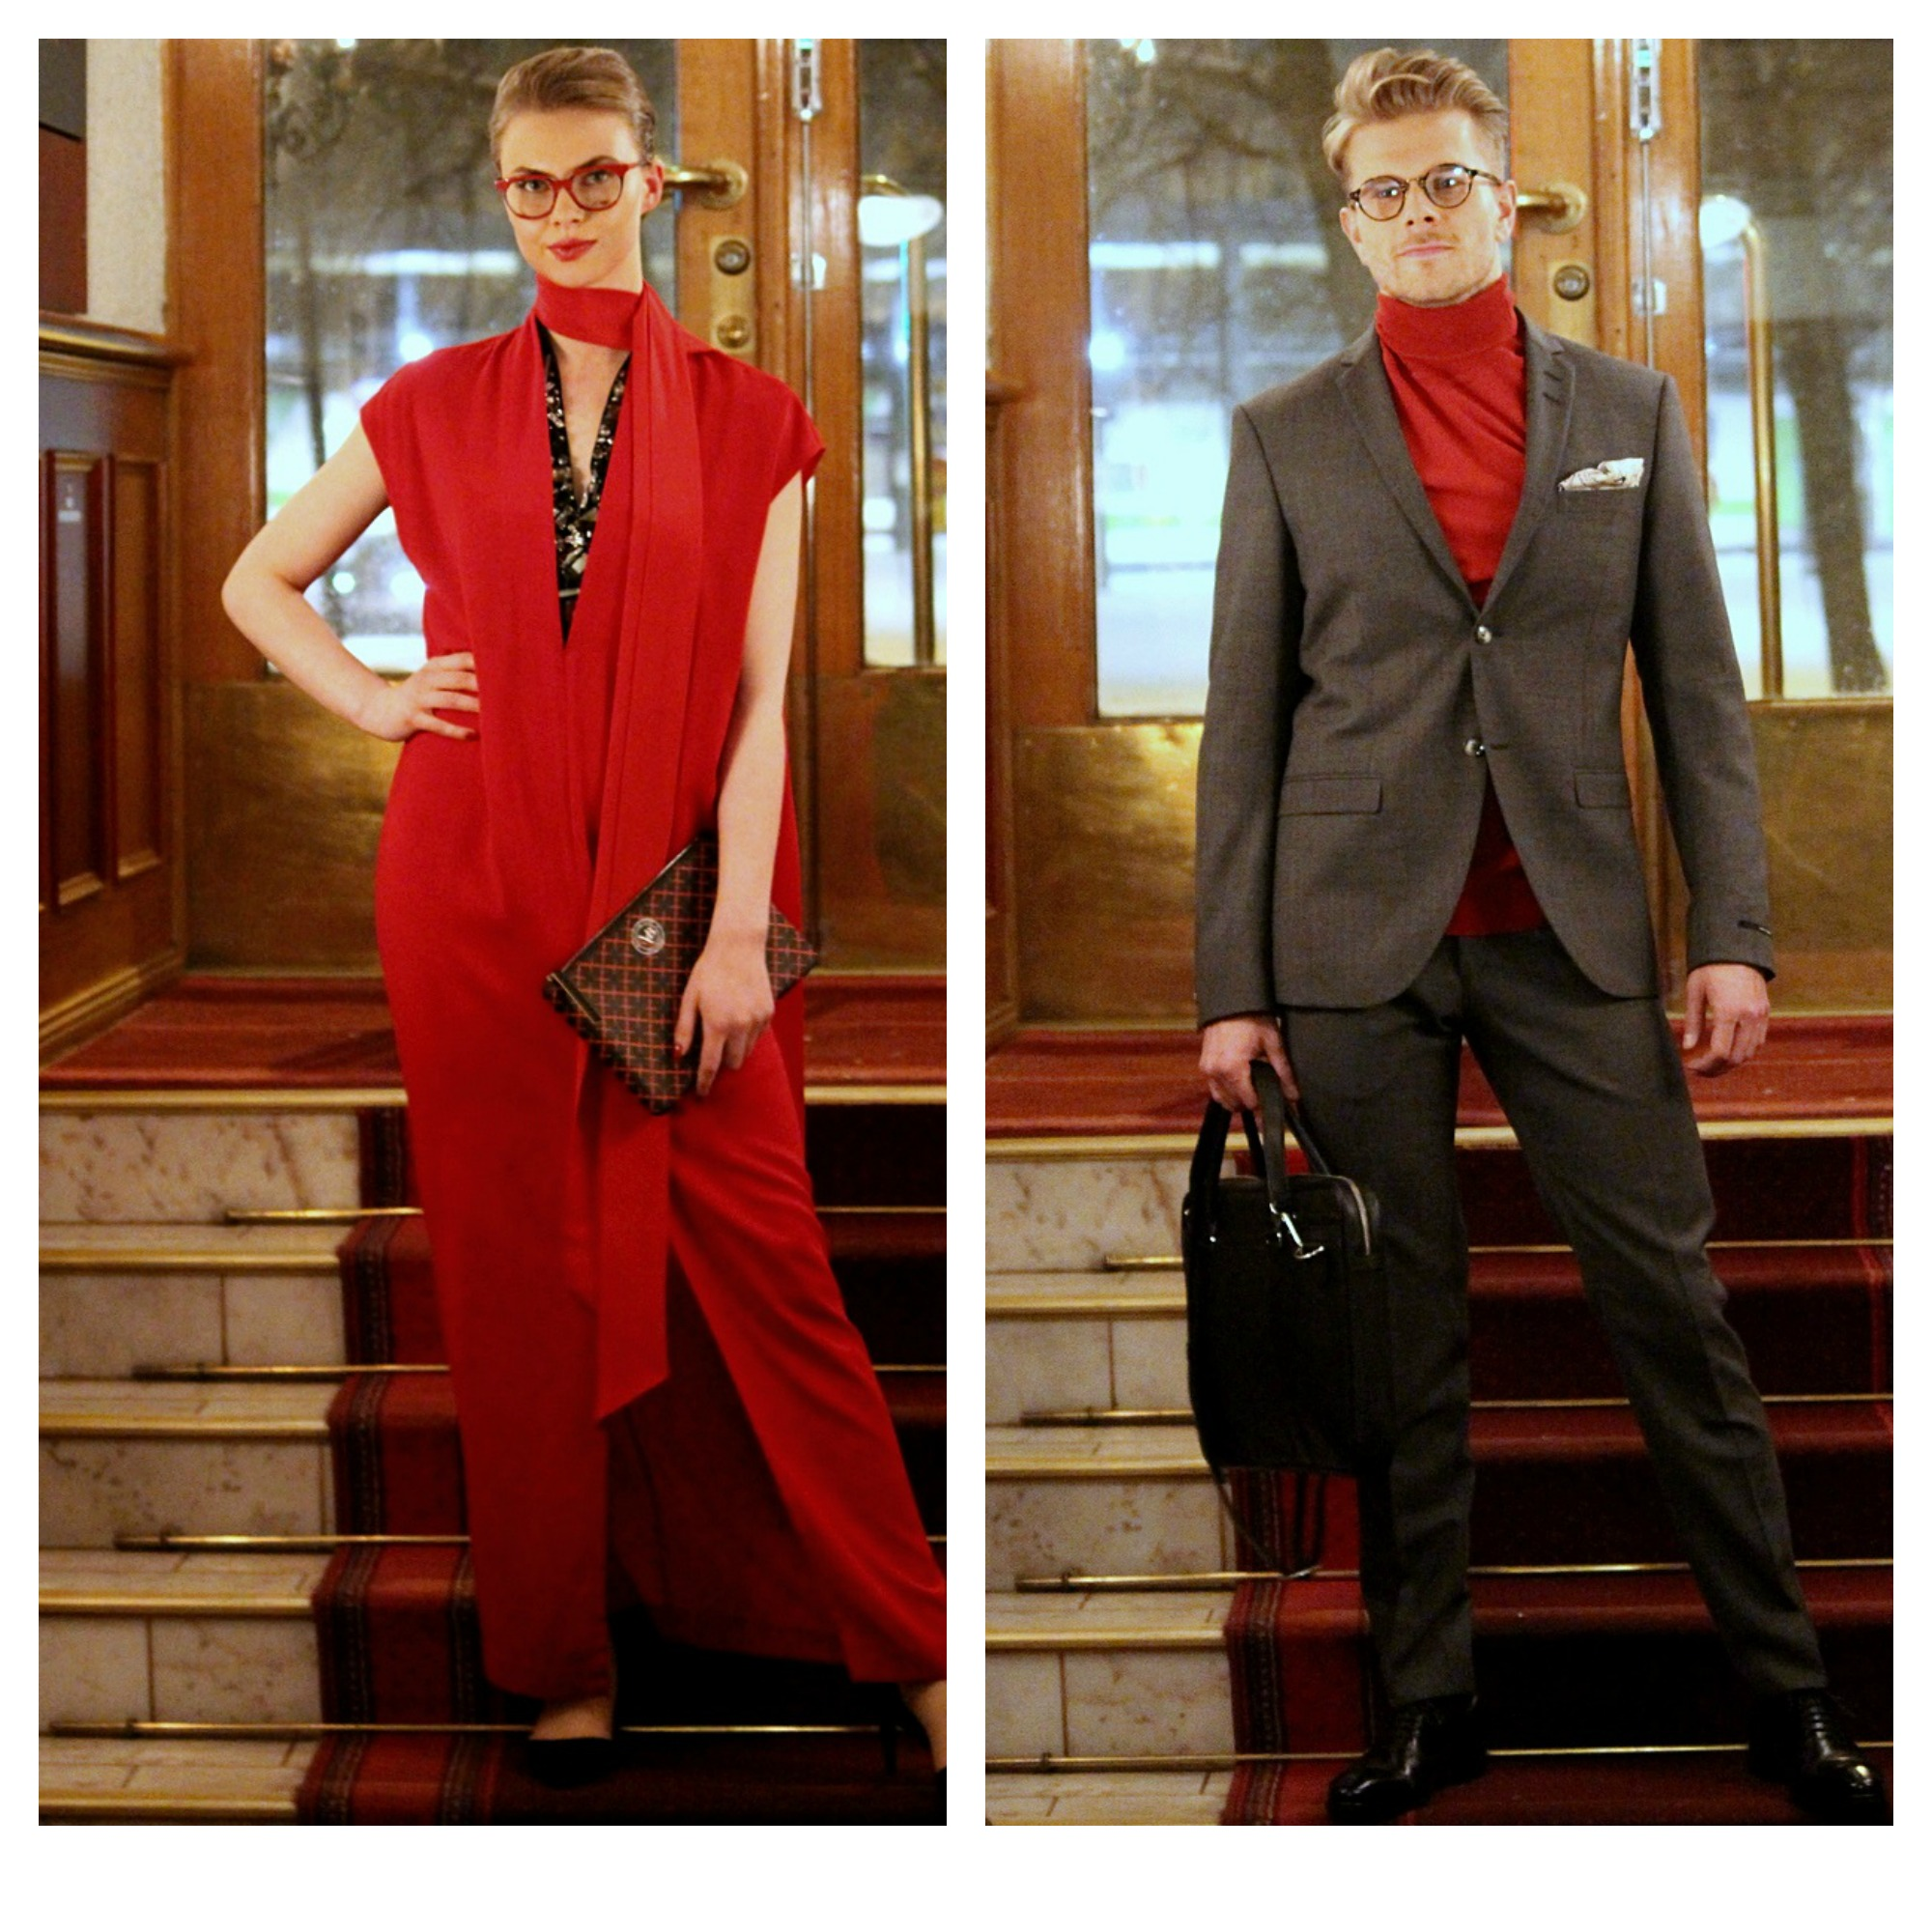 Lady in red; By Malene Birger dress & purse. He in Tiger of Sweden suit & knit & handkerchief & bag & shoes